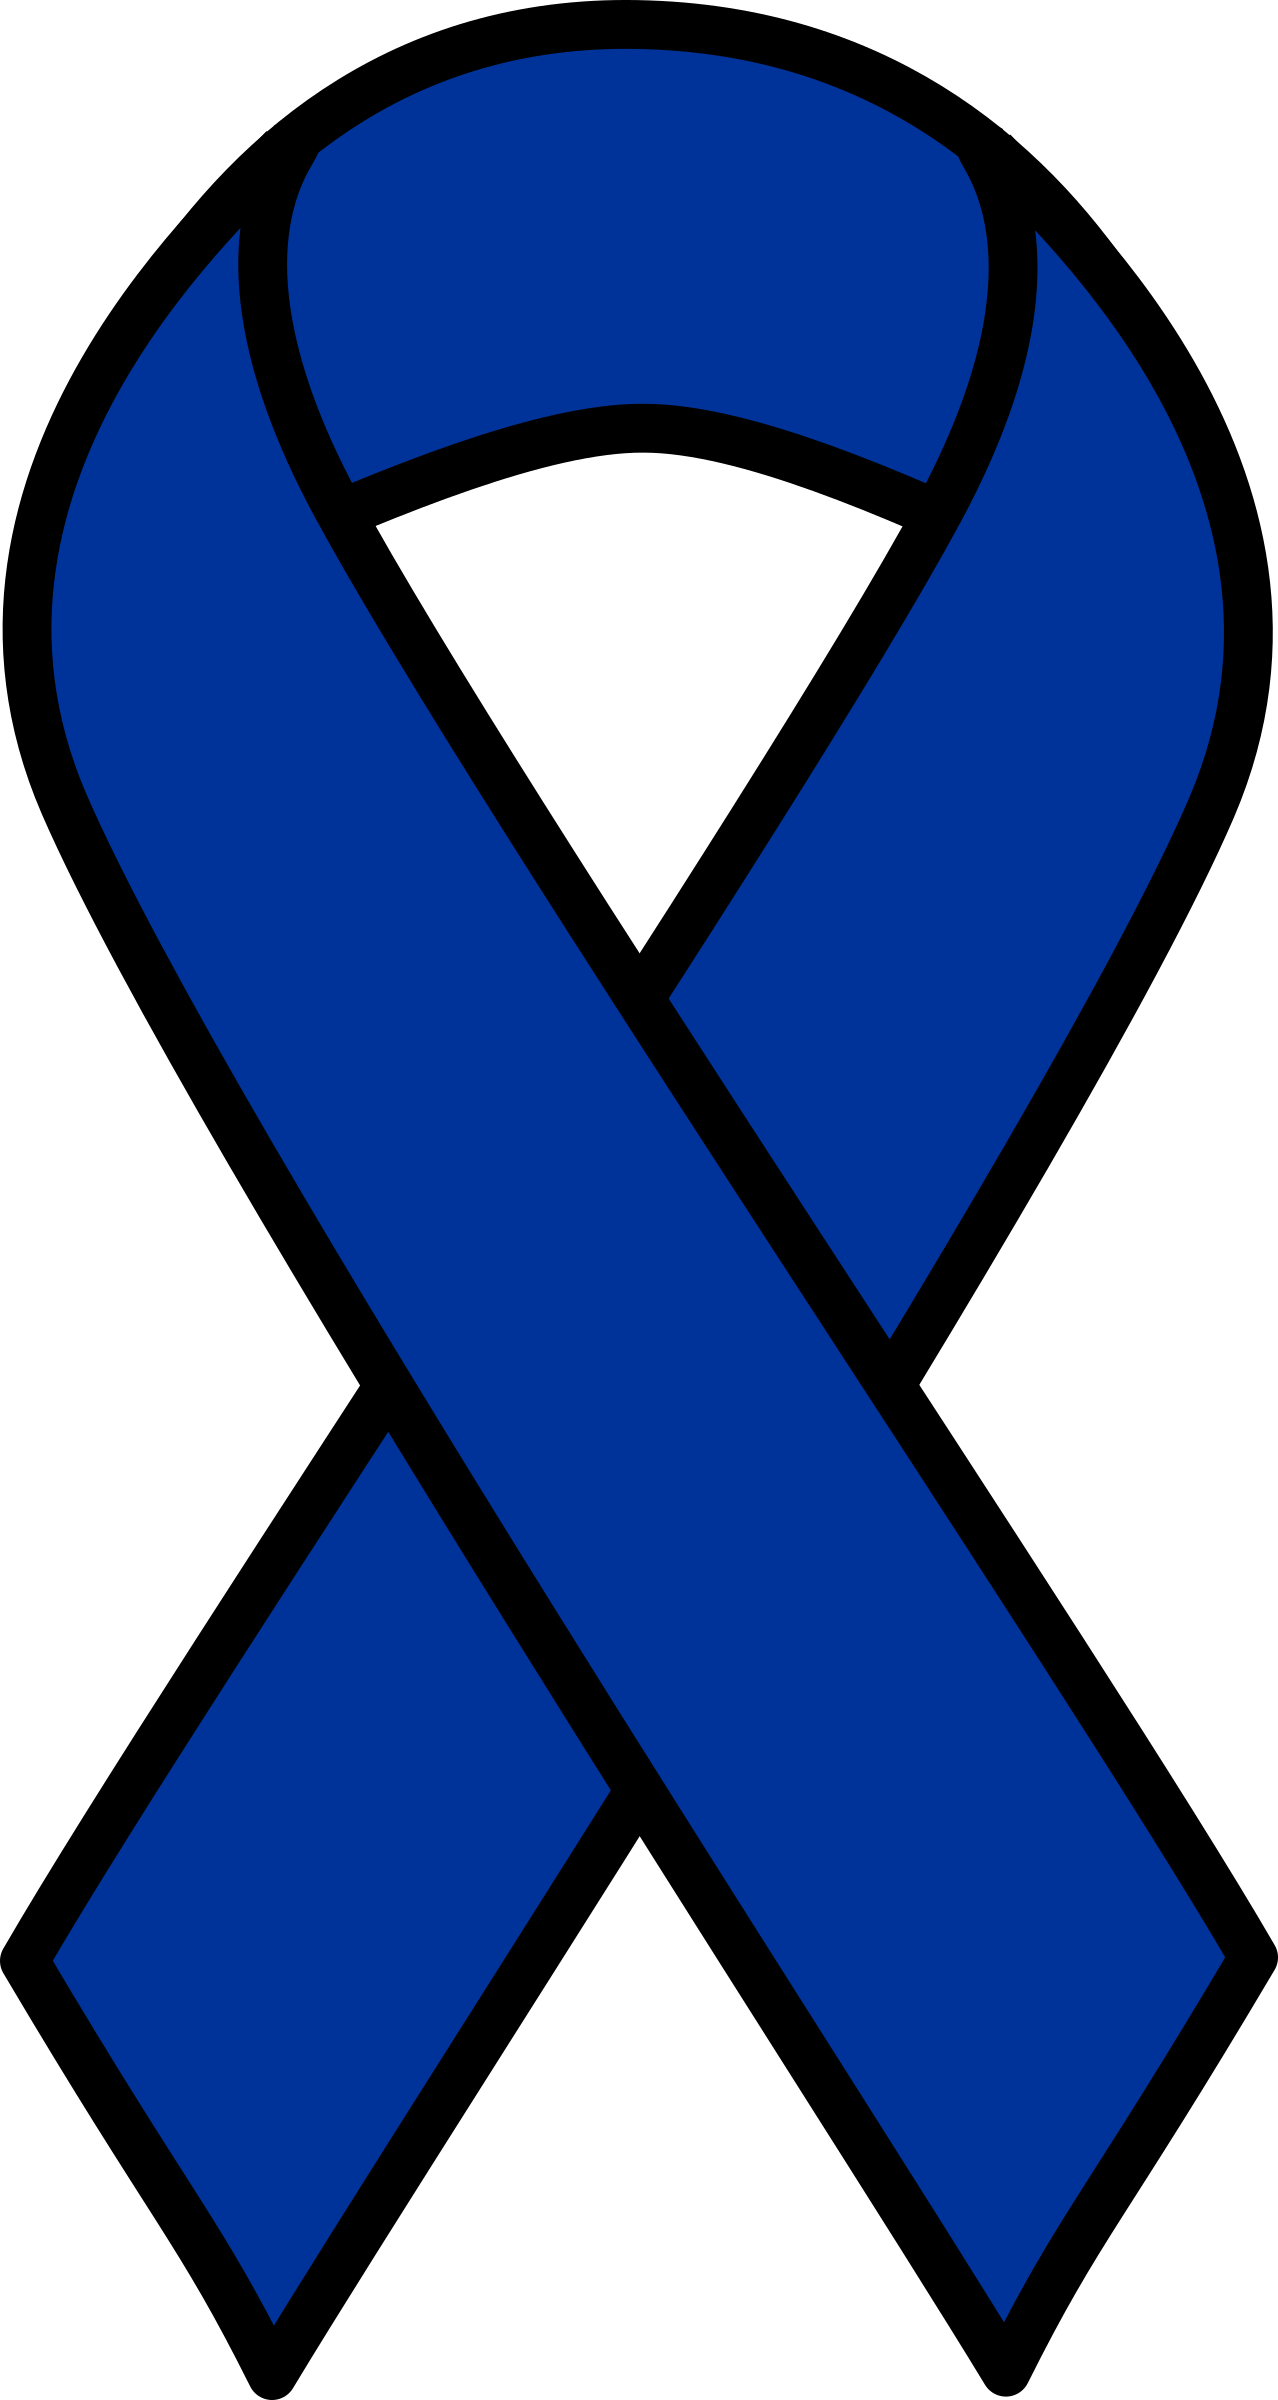 Support drawing colon cancer ribbon. Awareness symbol image collections